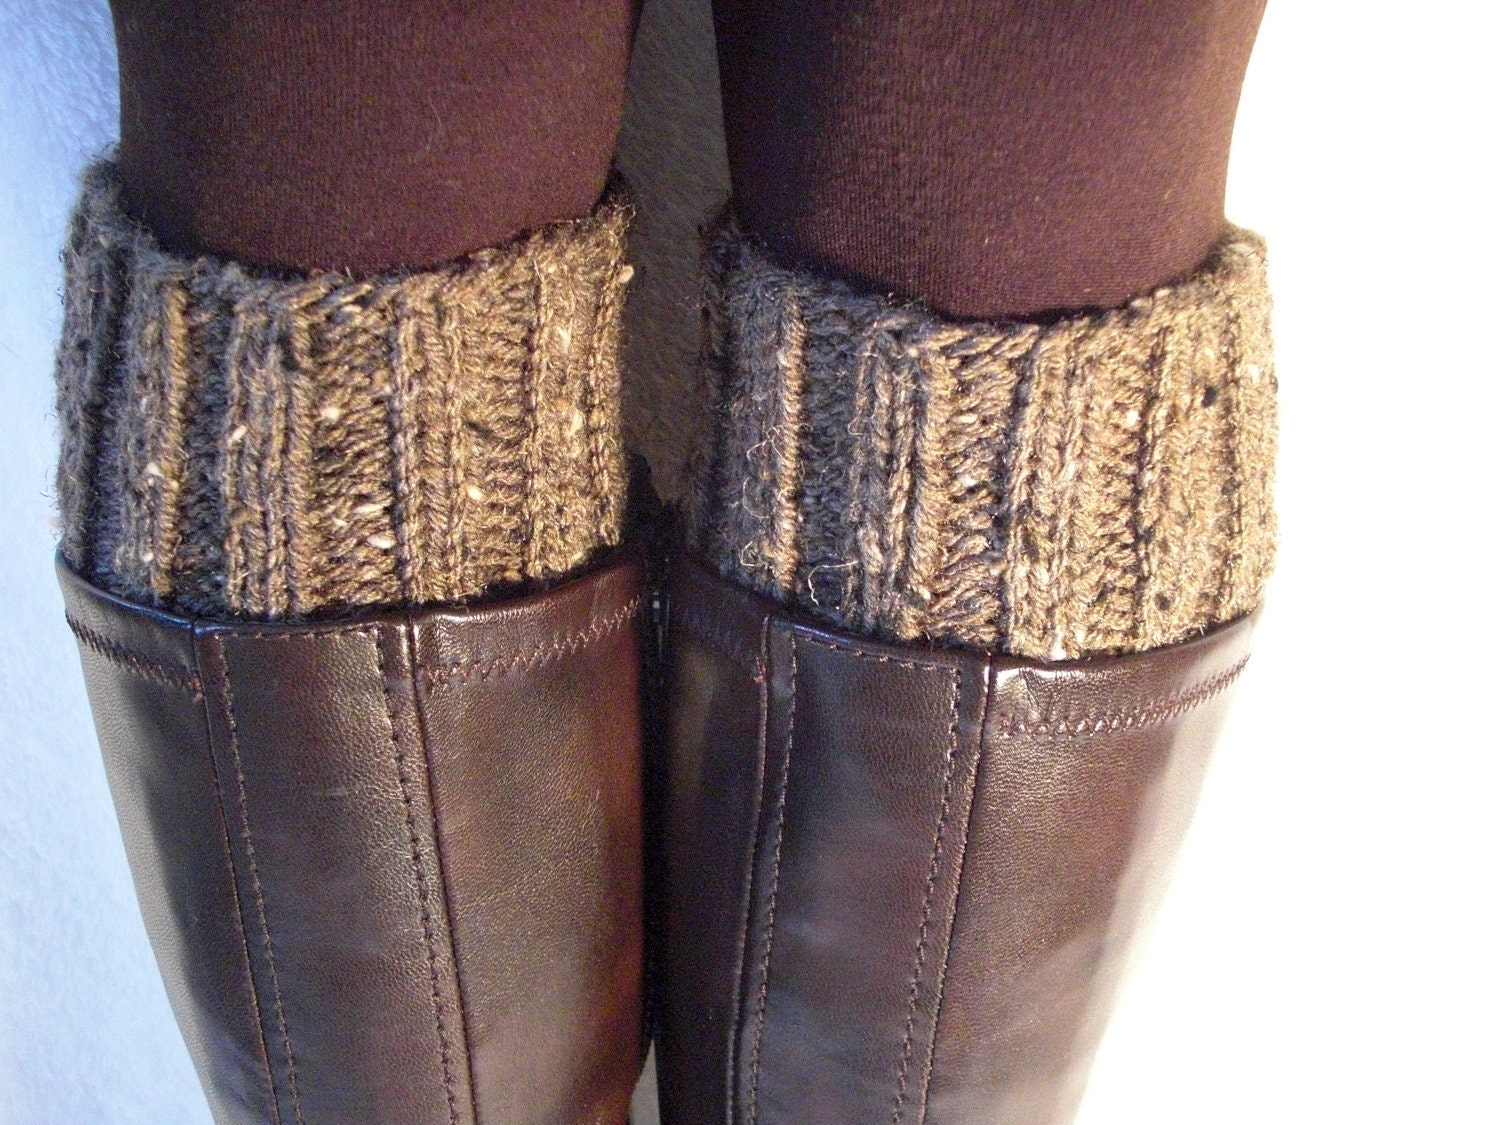 Ugg boots style knitting pattern free national sheriffs association ugg boots style knitting pattern free bankloansurffo Gallery